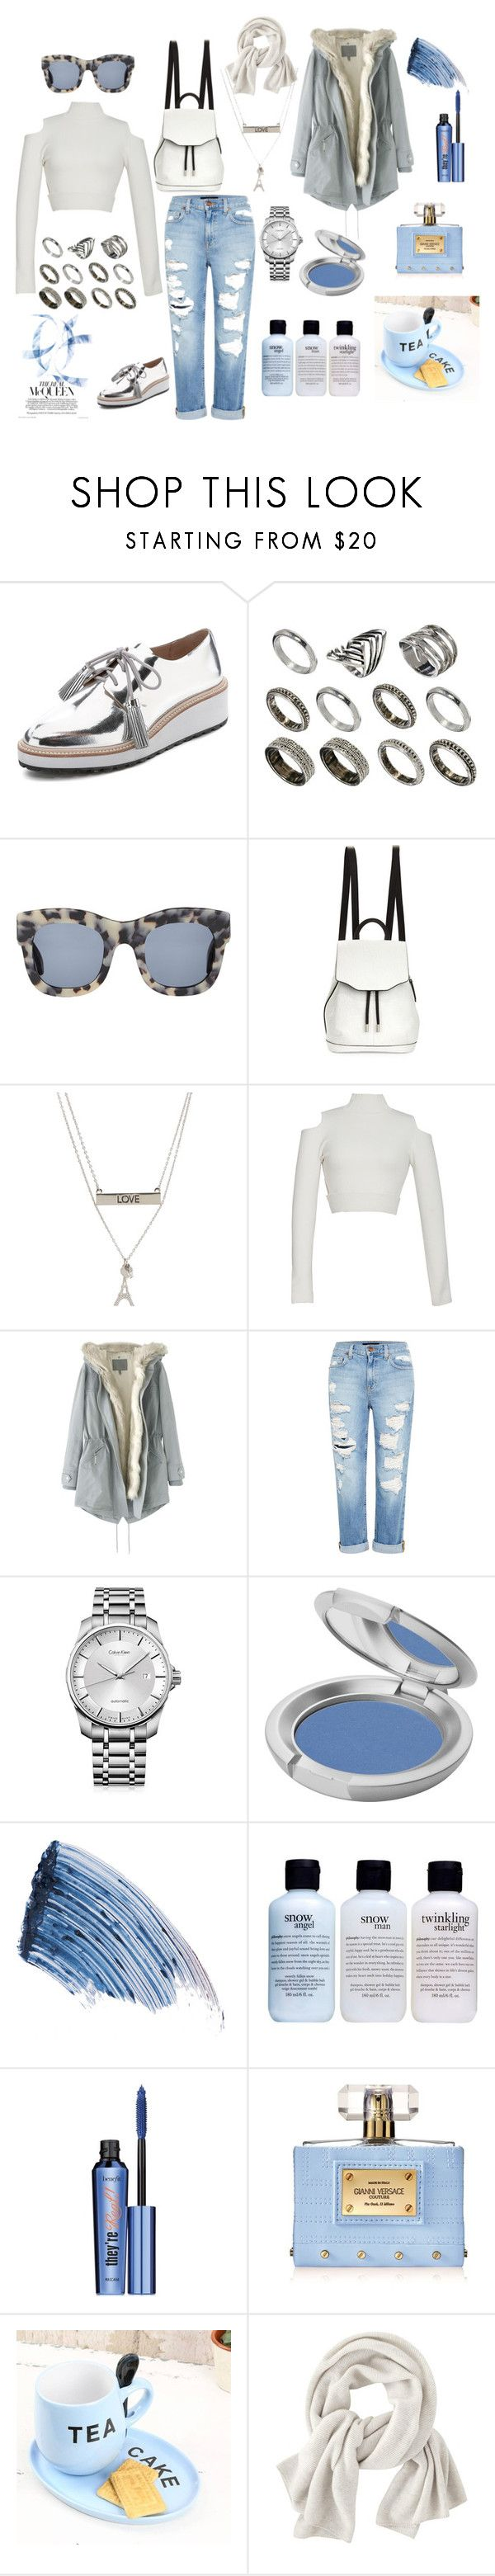 """""""Untitled #402"""" by thestyle-chic ❤ liked on Polyvore featuring Loeffler Randall, ASOS, Illesteva, rag & bone, Aéropostale, Jonathan Simkhai, Wrap, Genetic Denim, Calvin Klein and T. LeClerc"""